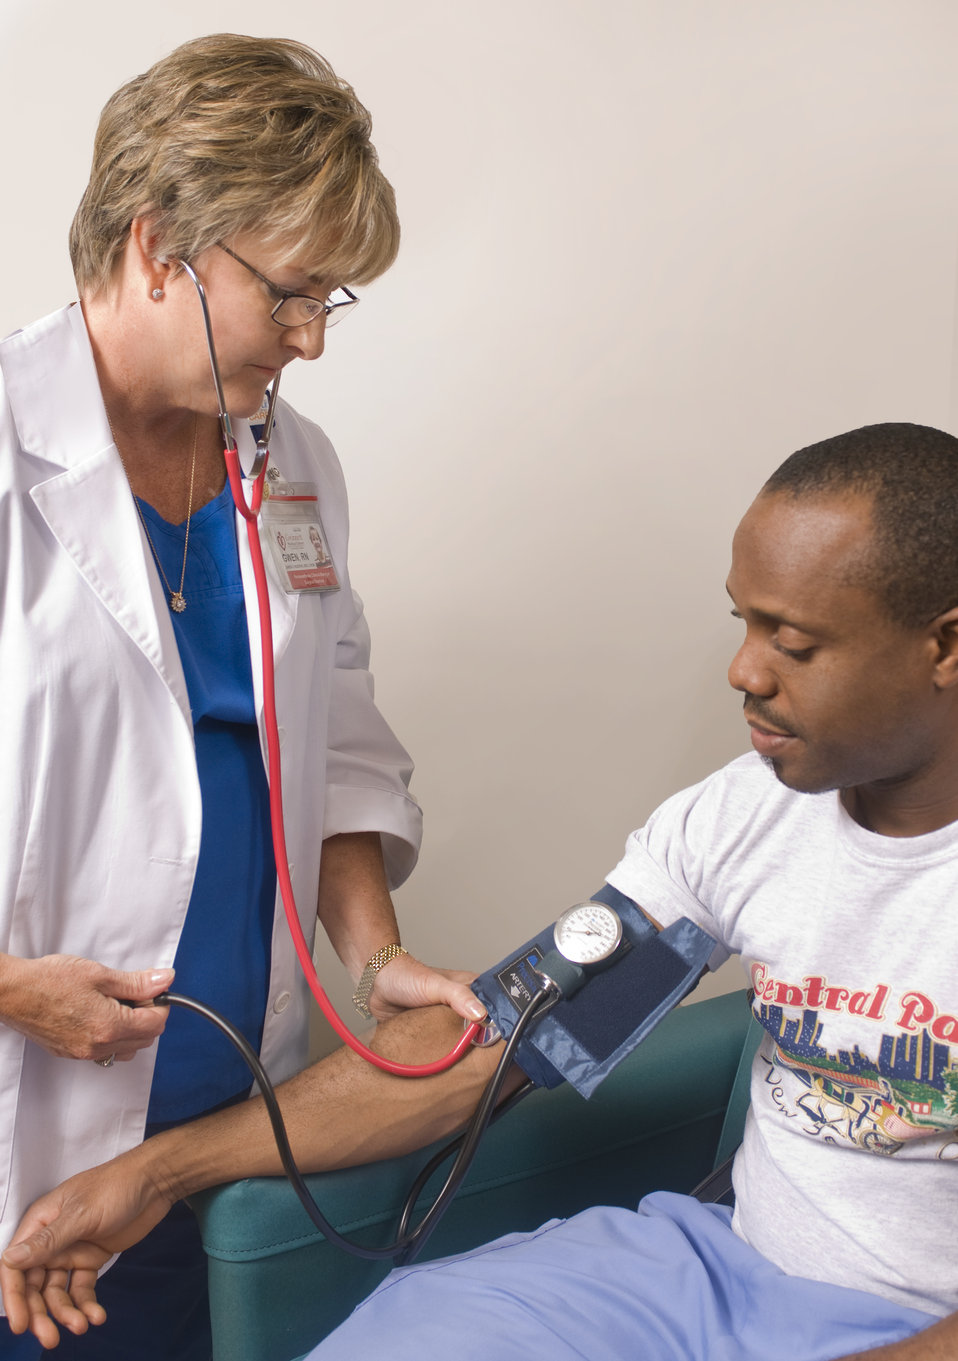 This image depicts a female clinician in the process of conducting a blood pressure examination upon a seated male patient in a clinical set